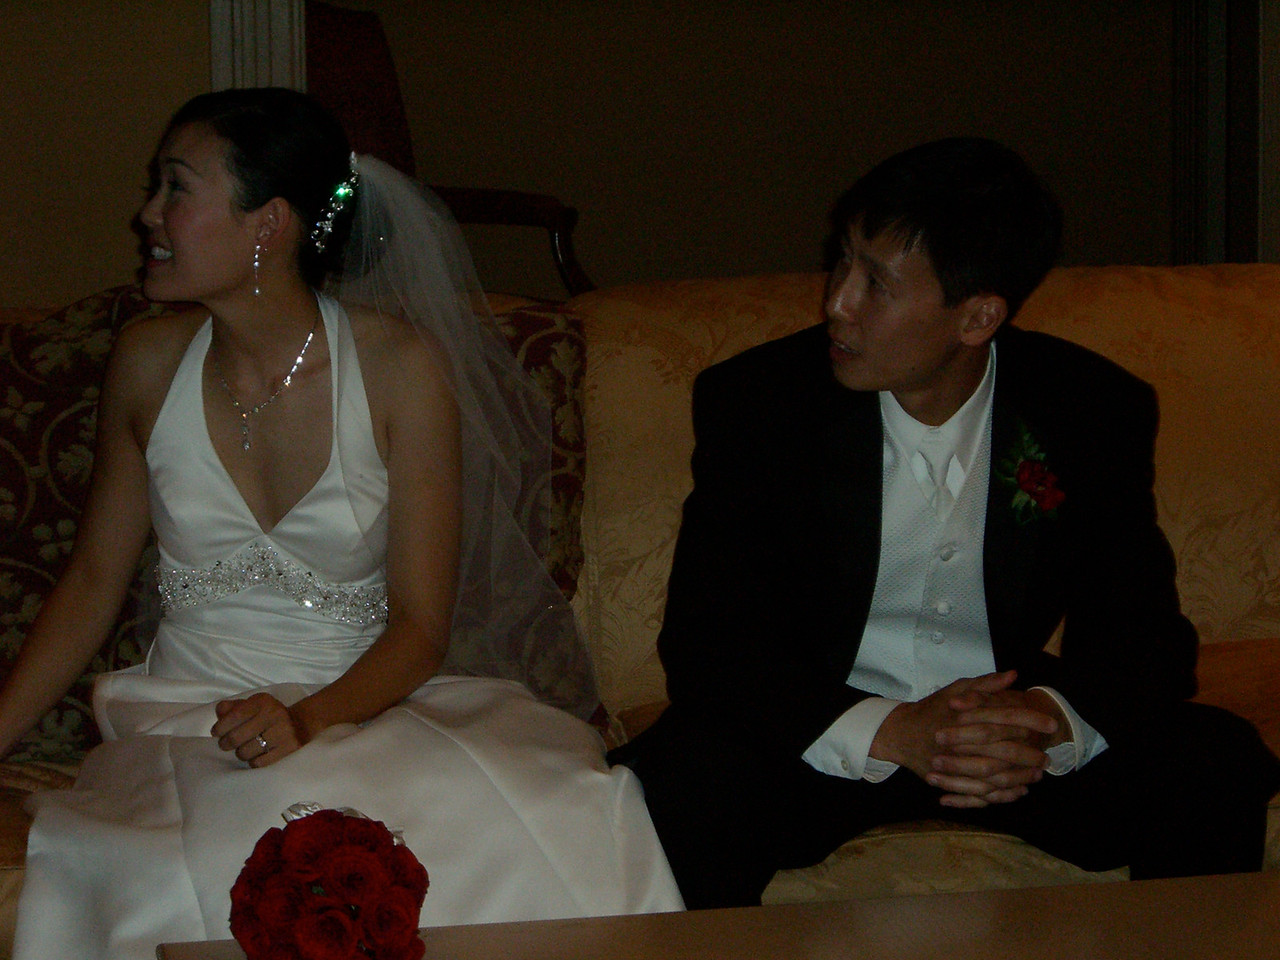 Bride & Groom waiting to enter - with flash